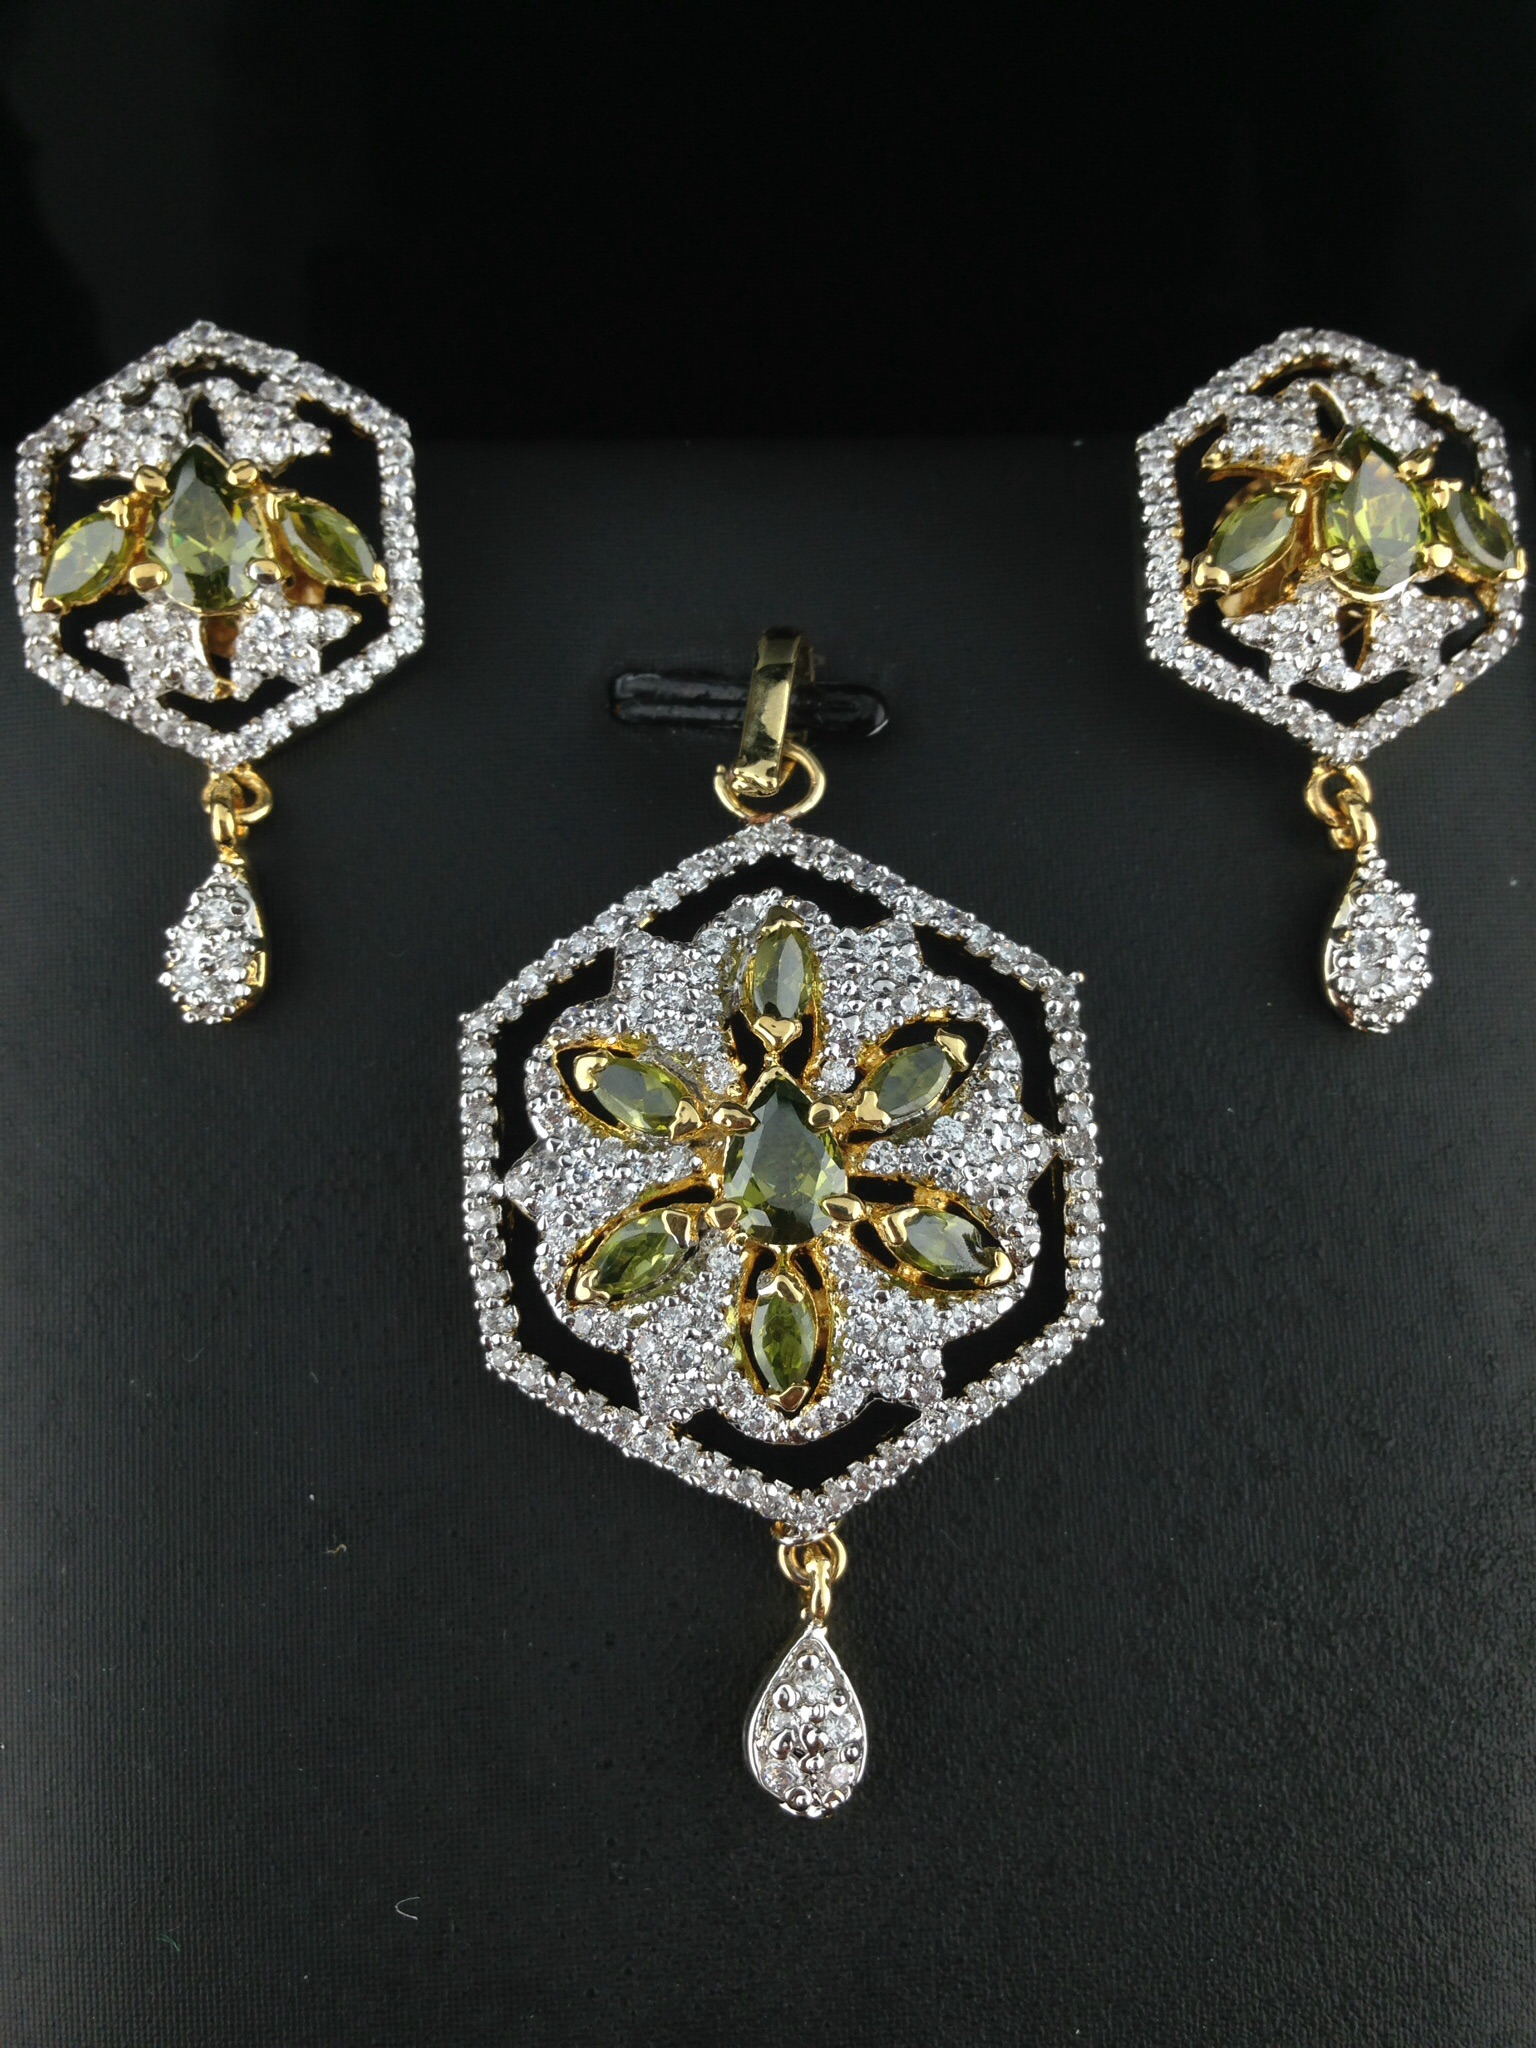 American Diamond CZ Pendant Set With Green Crystals